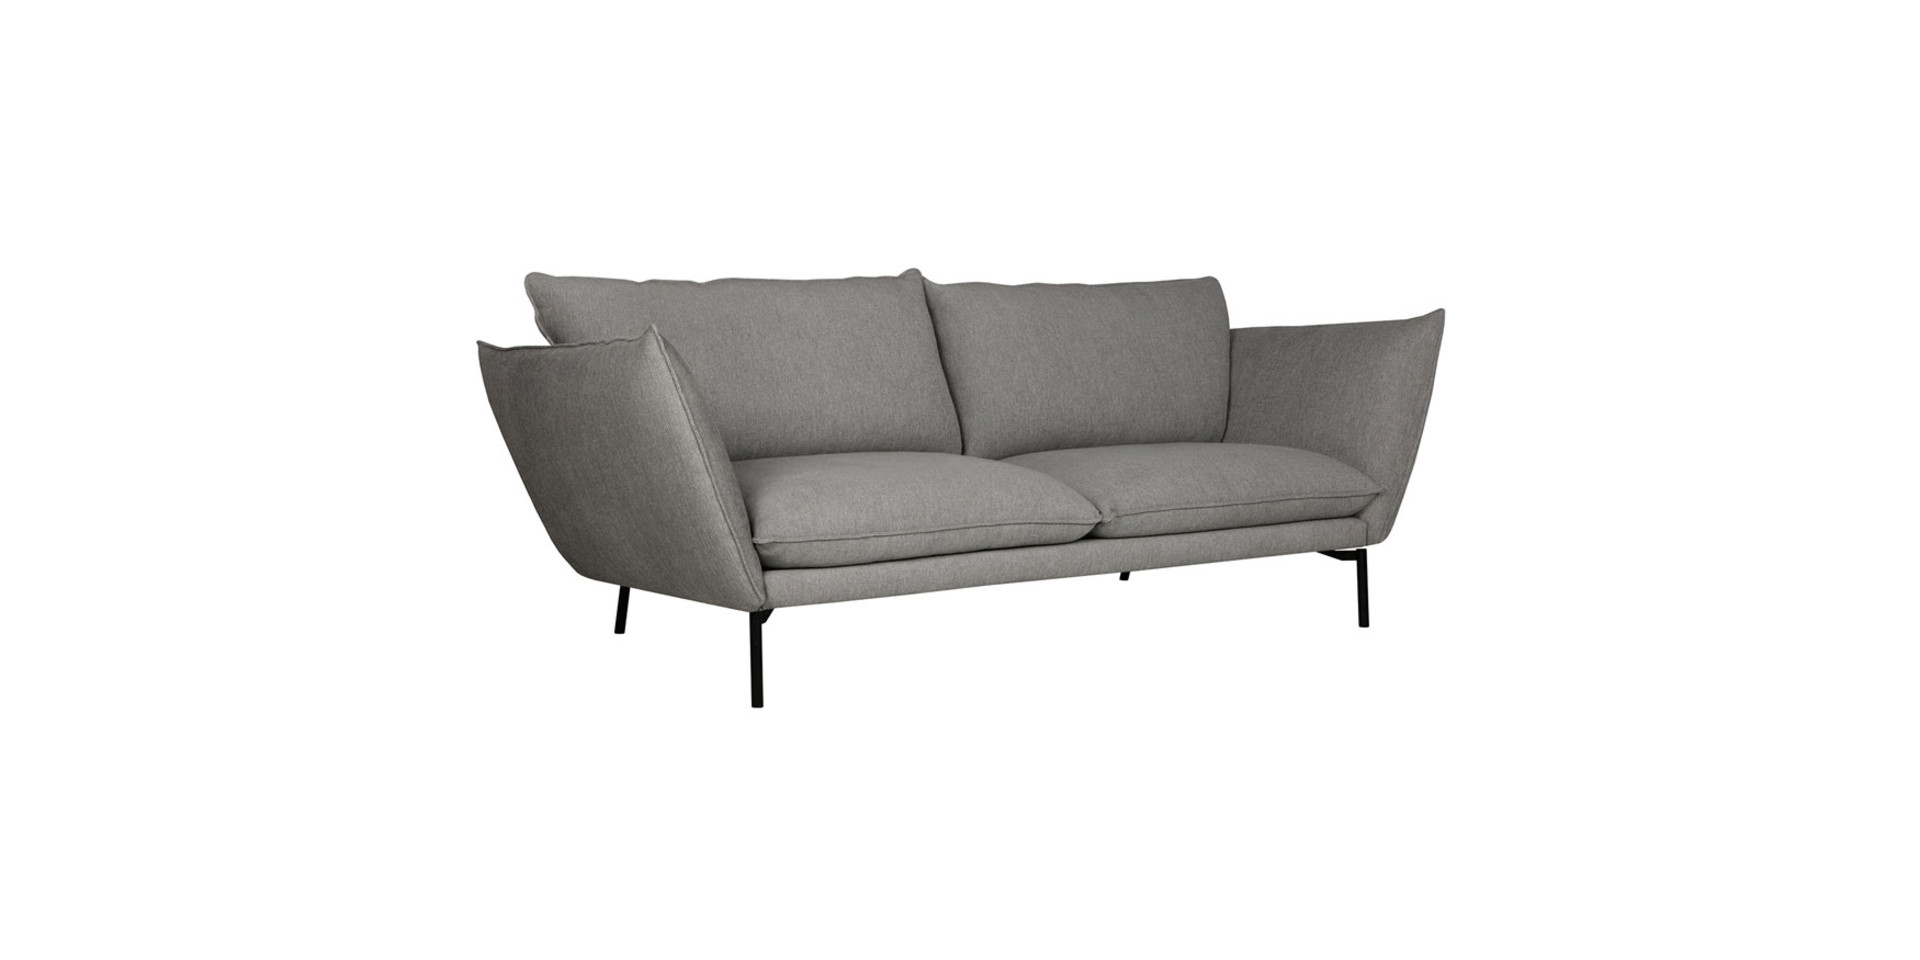 sits-hugo-canape-3seater_roma63_grey_2